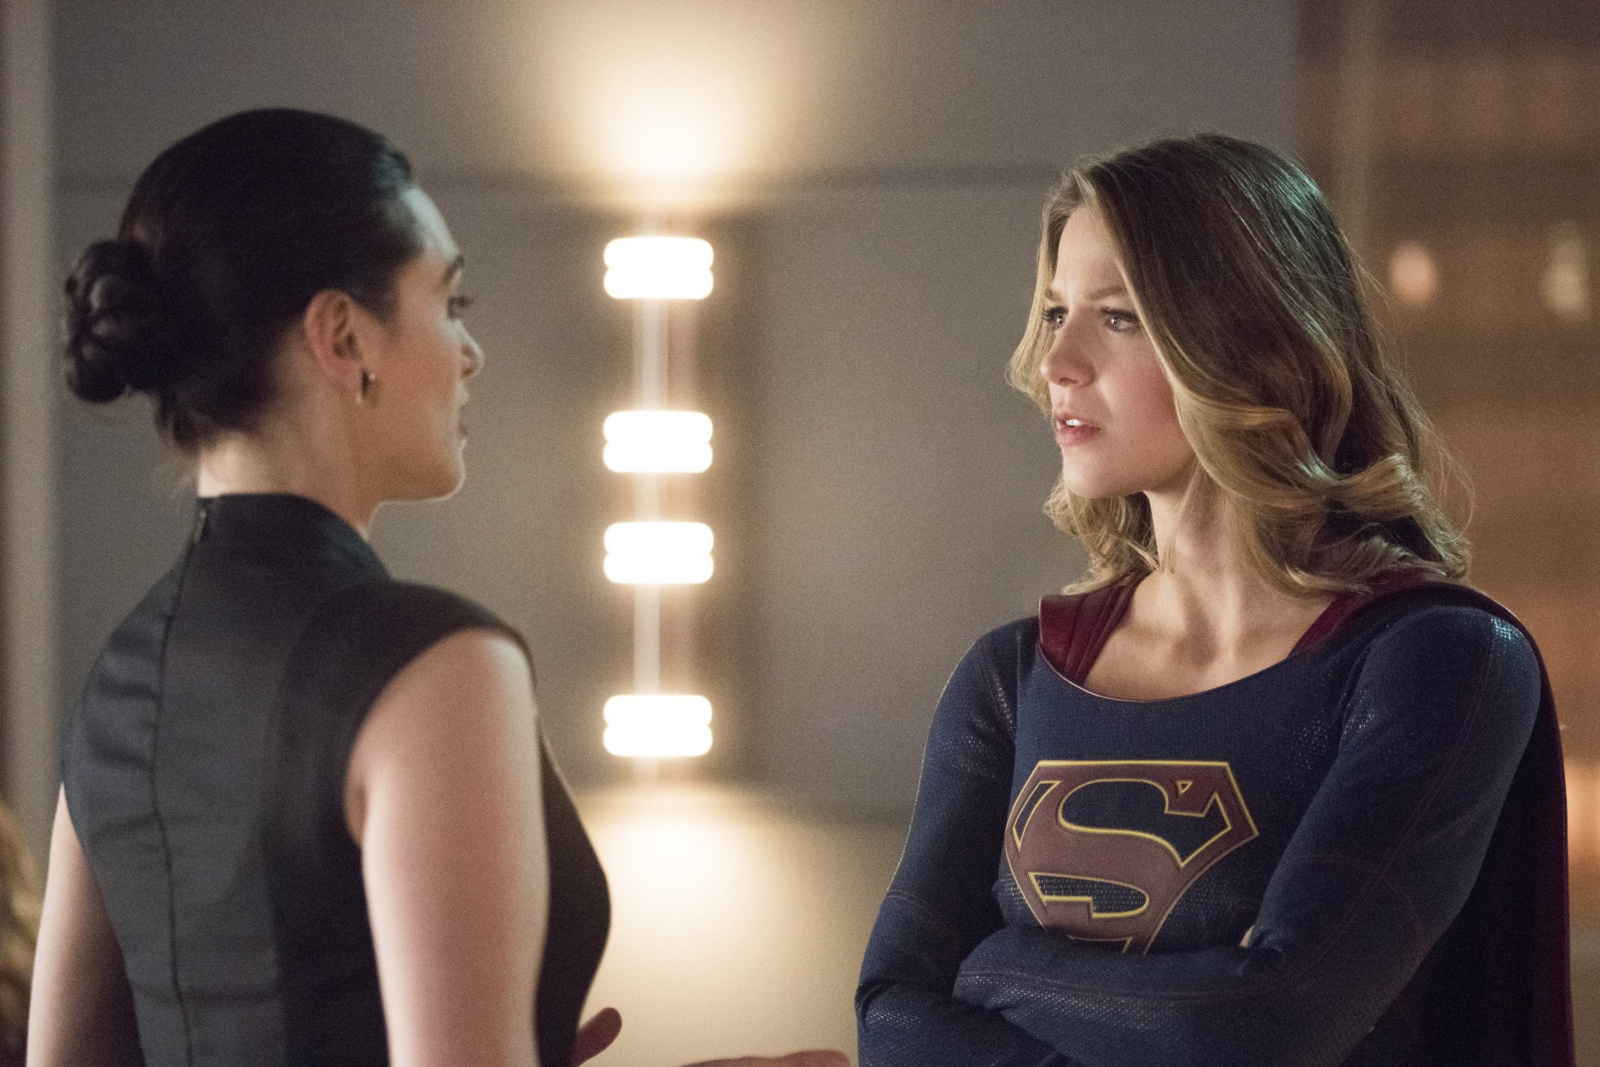 Supergirl: 'My Youth Is Yours' Ch 16&17 (Supercorp Fanfic) - ASK